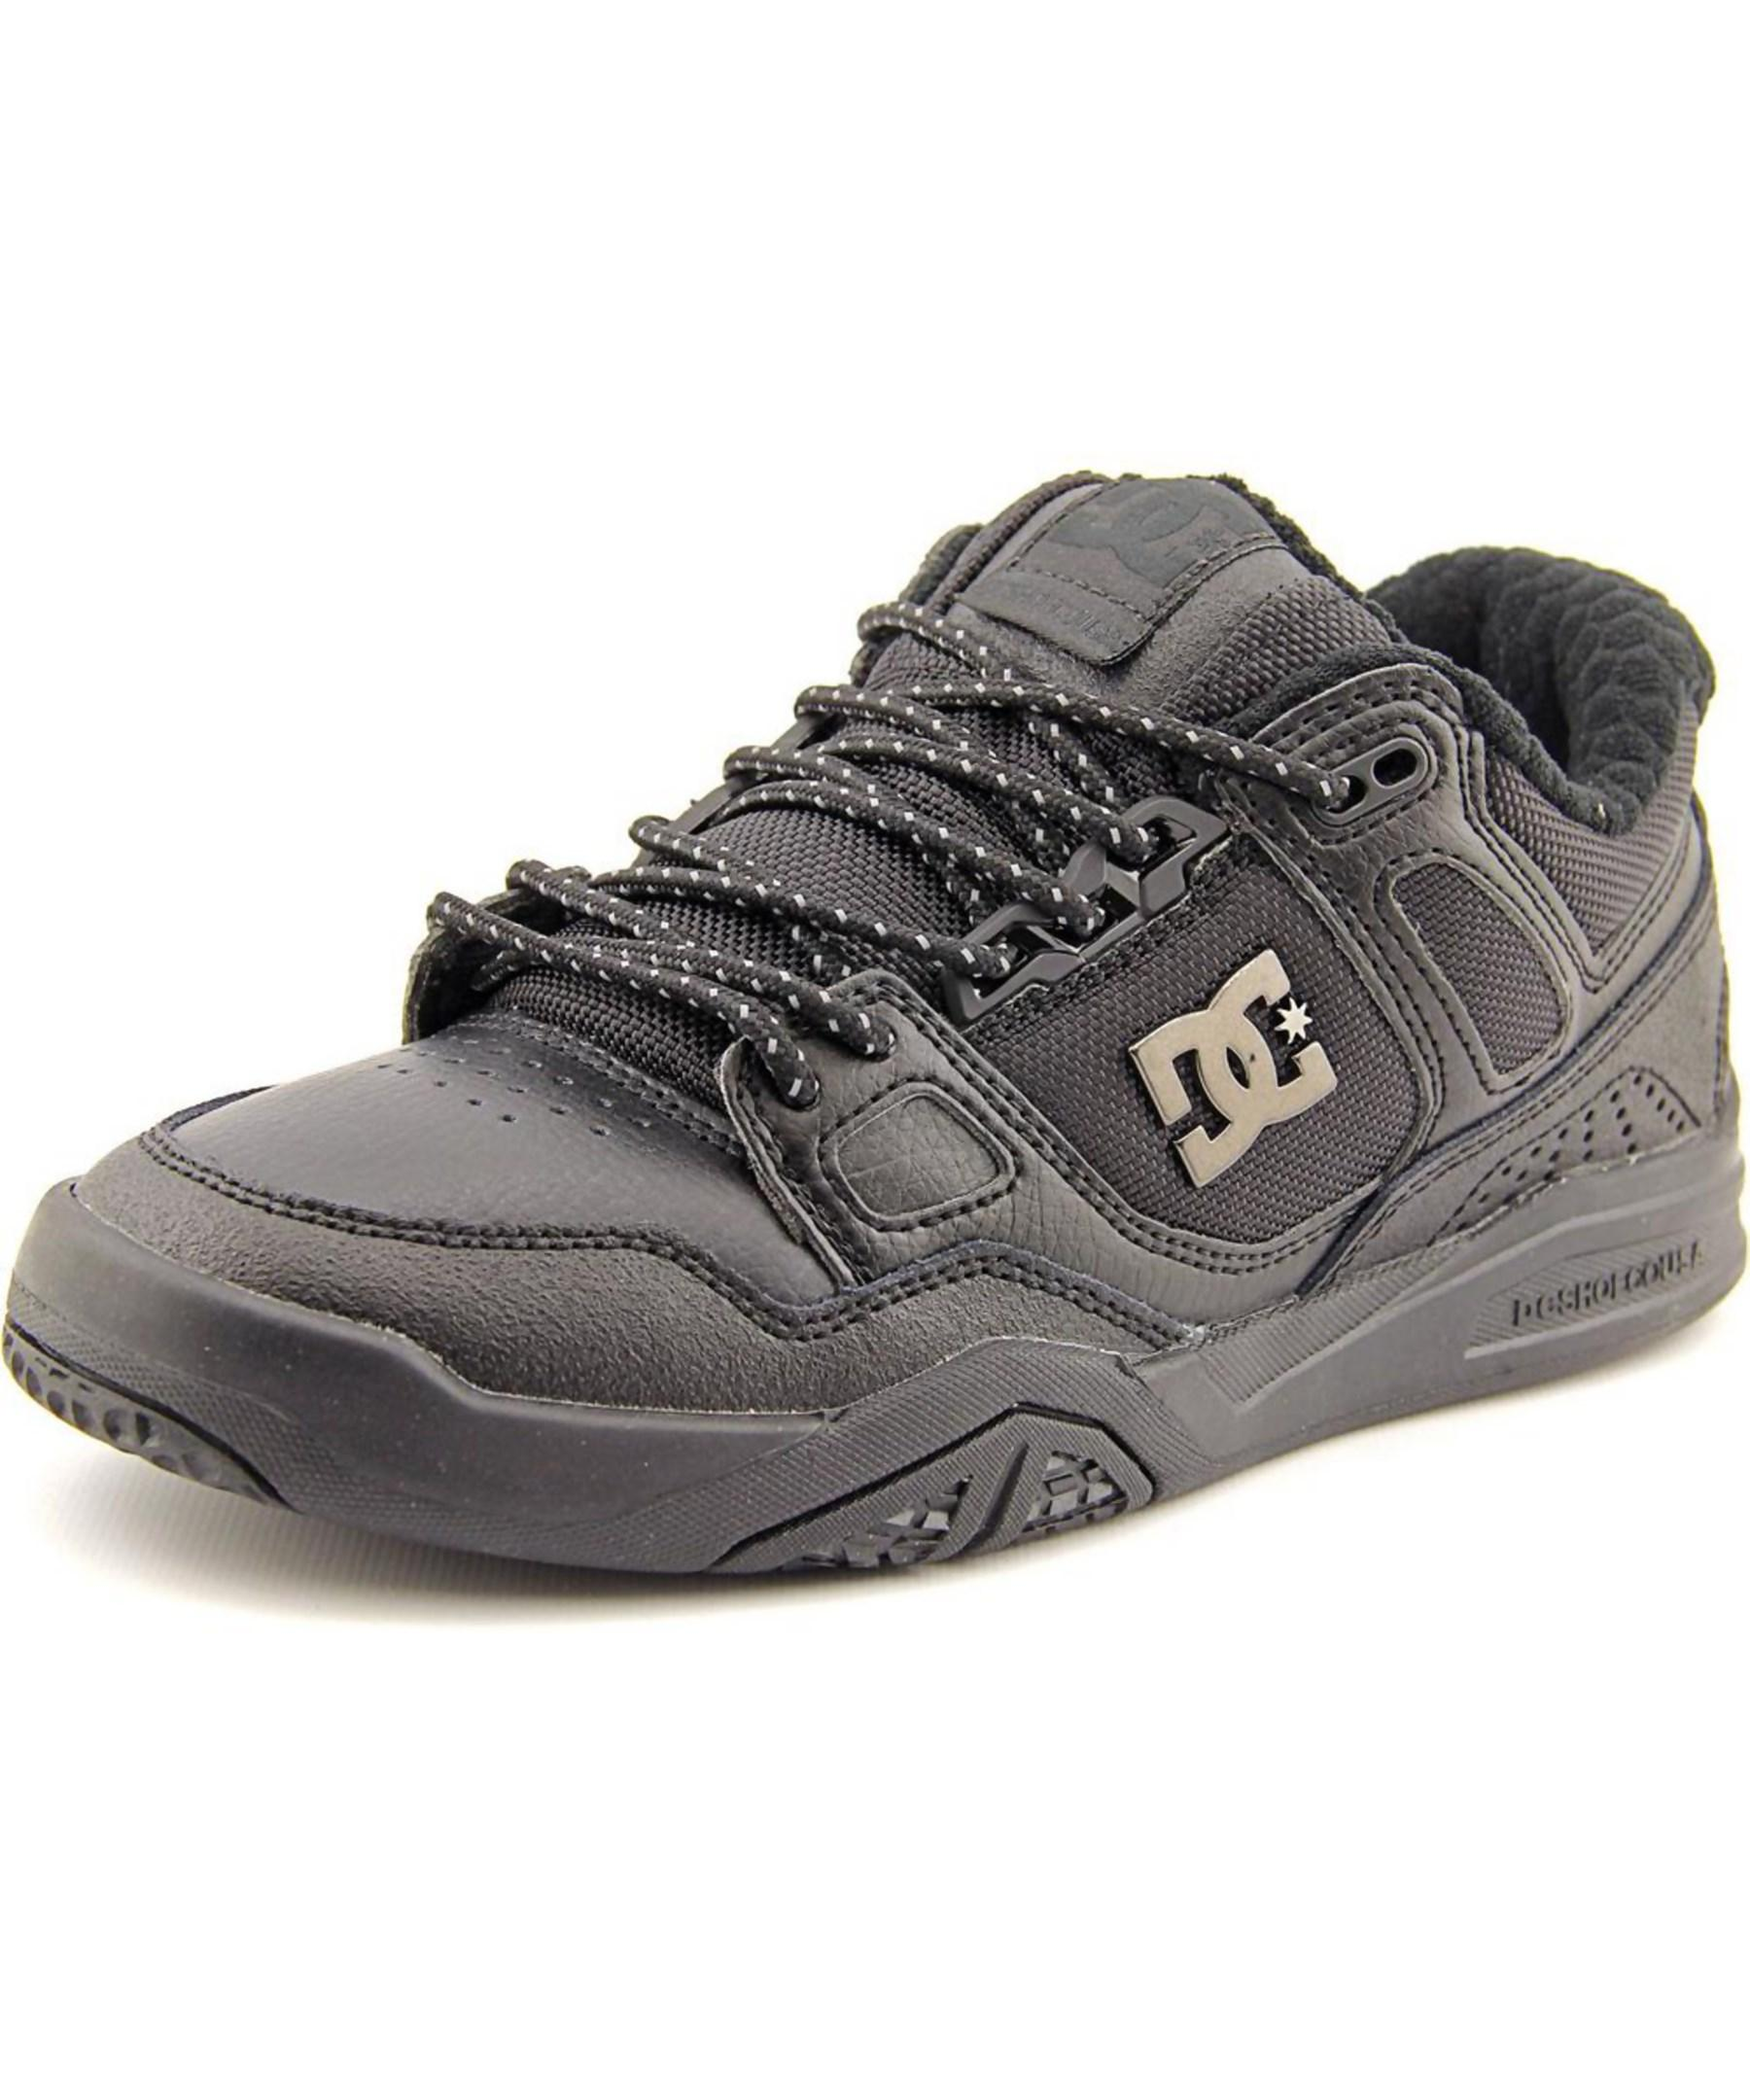 dc shoes stag 2 se toe leather black skate shoe